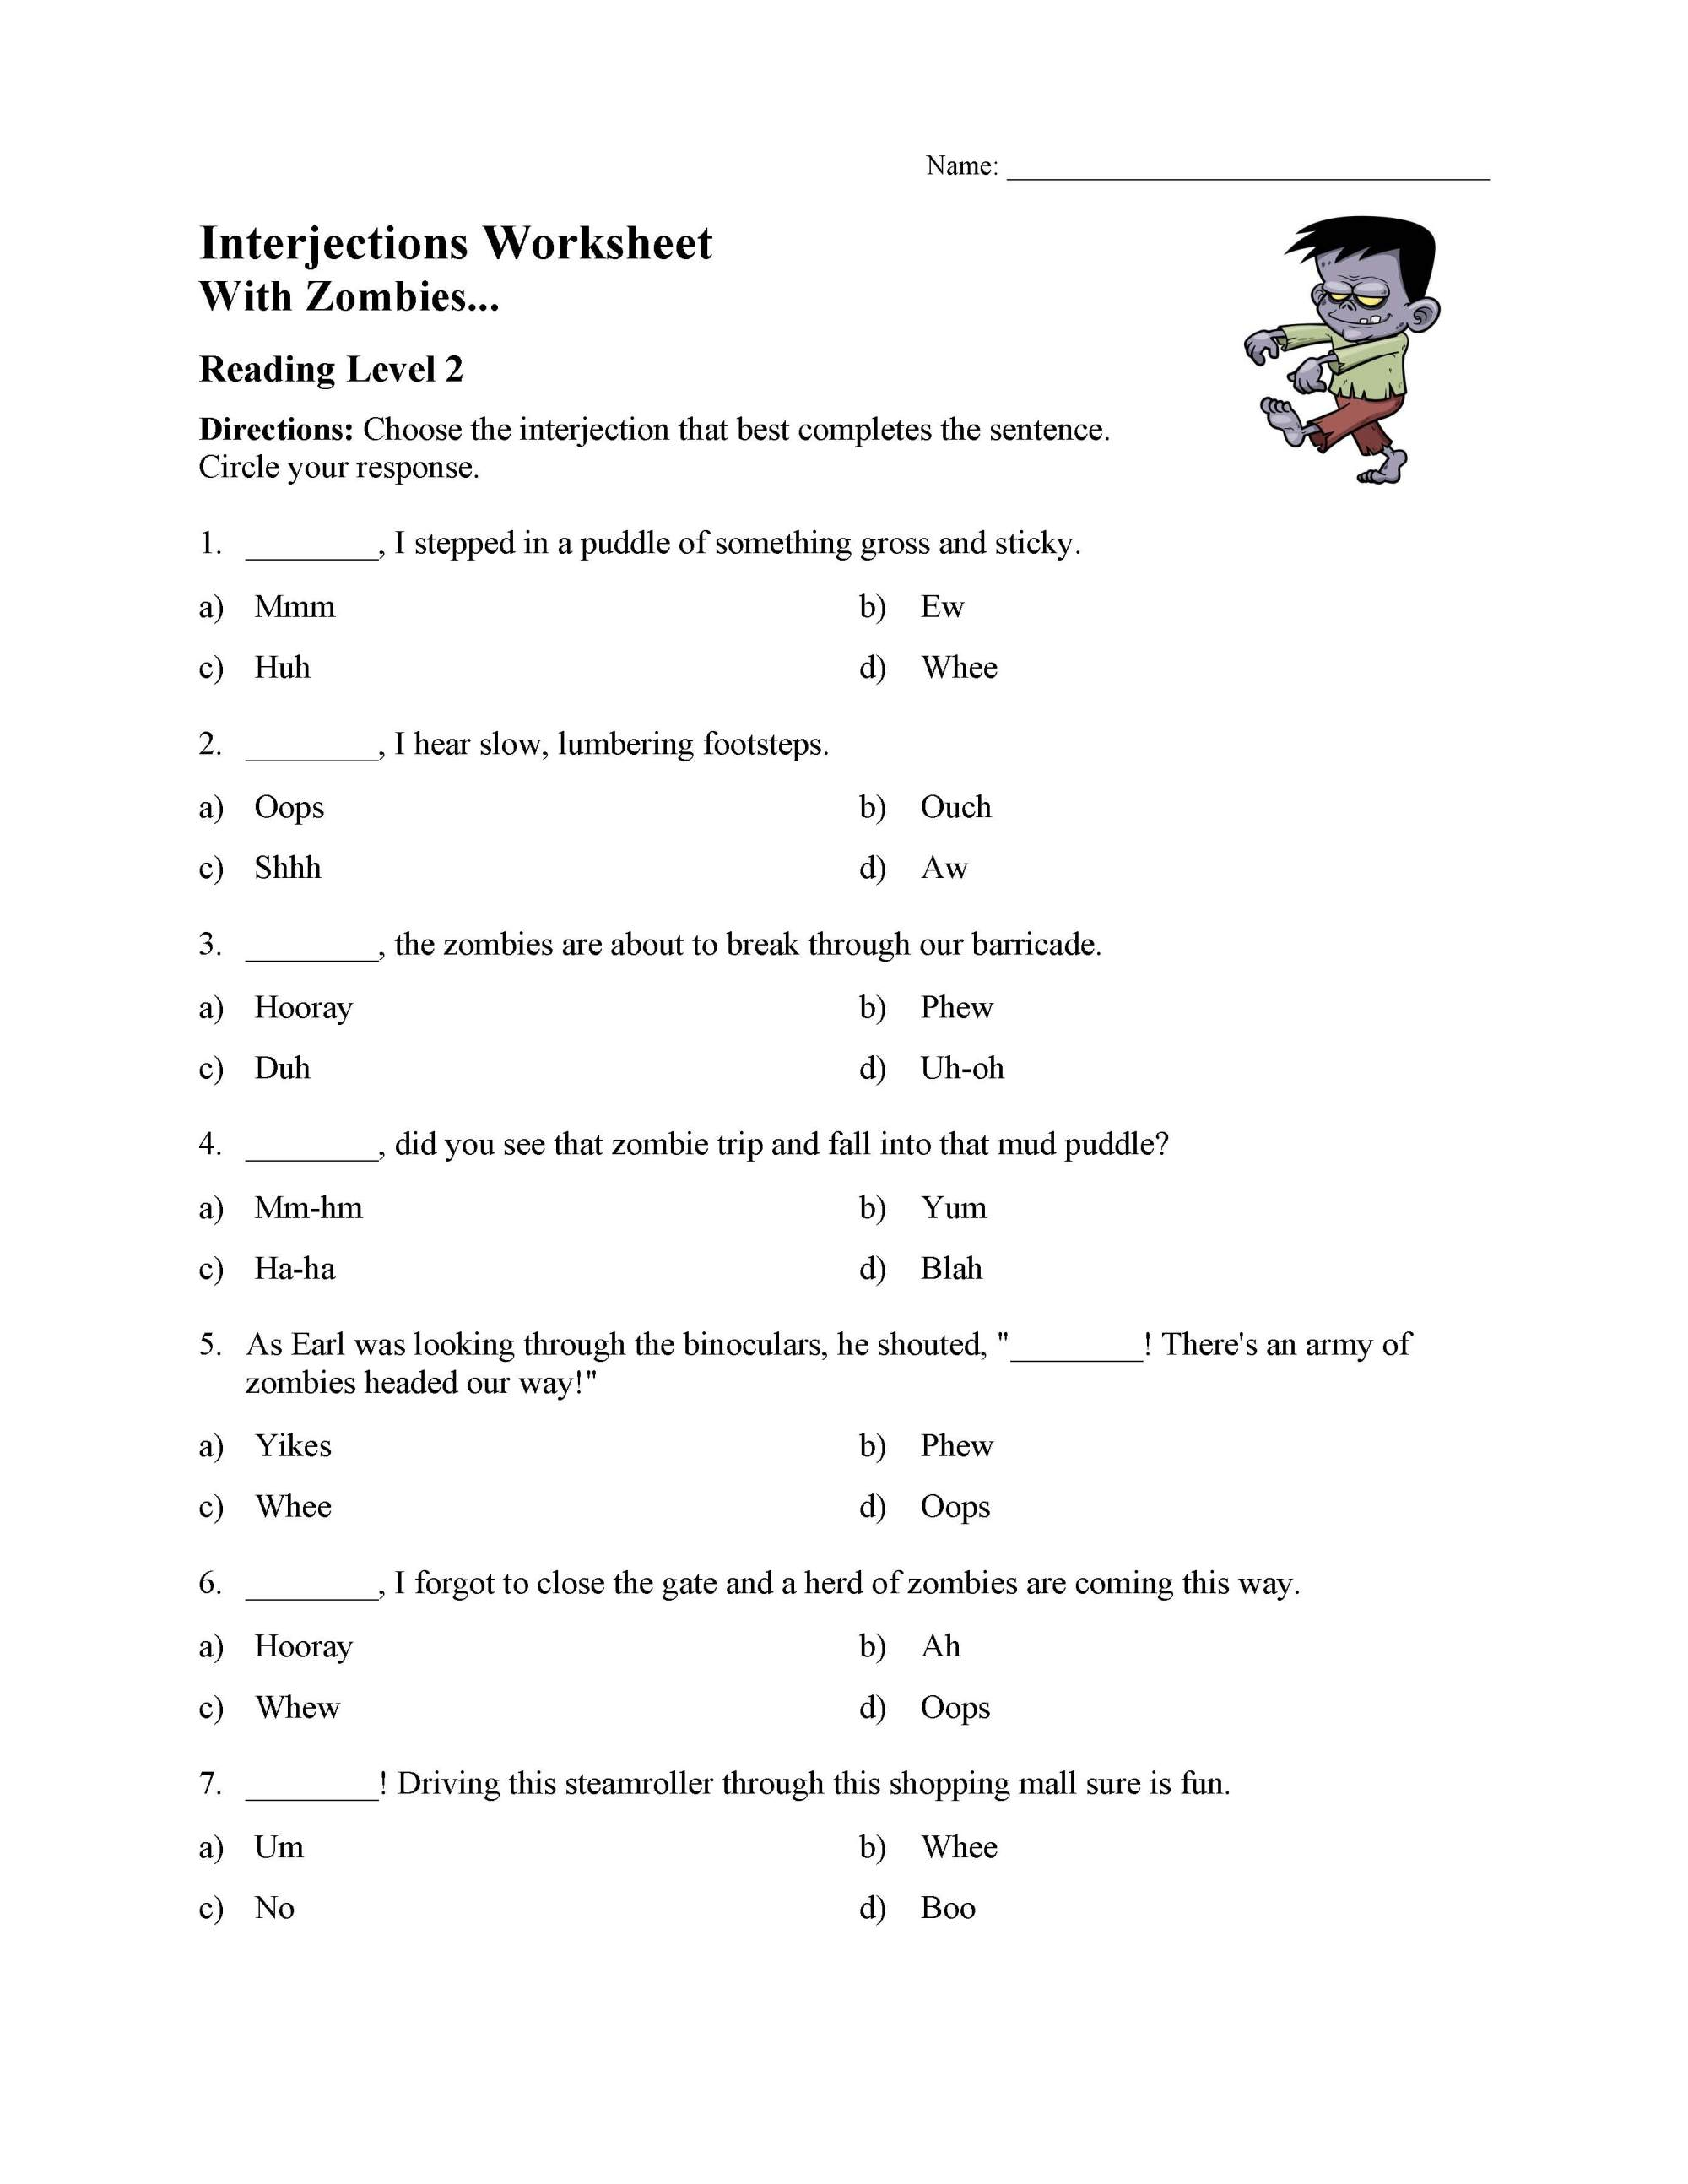 hight resolution of Interjections Worksheet - Reading Level 2   Preview